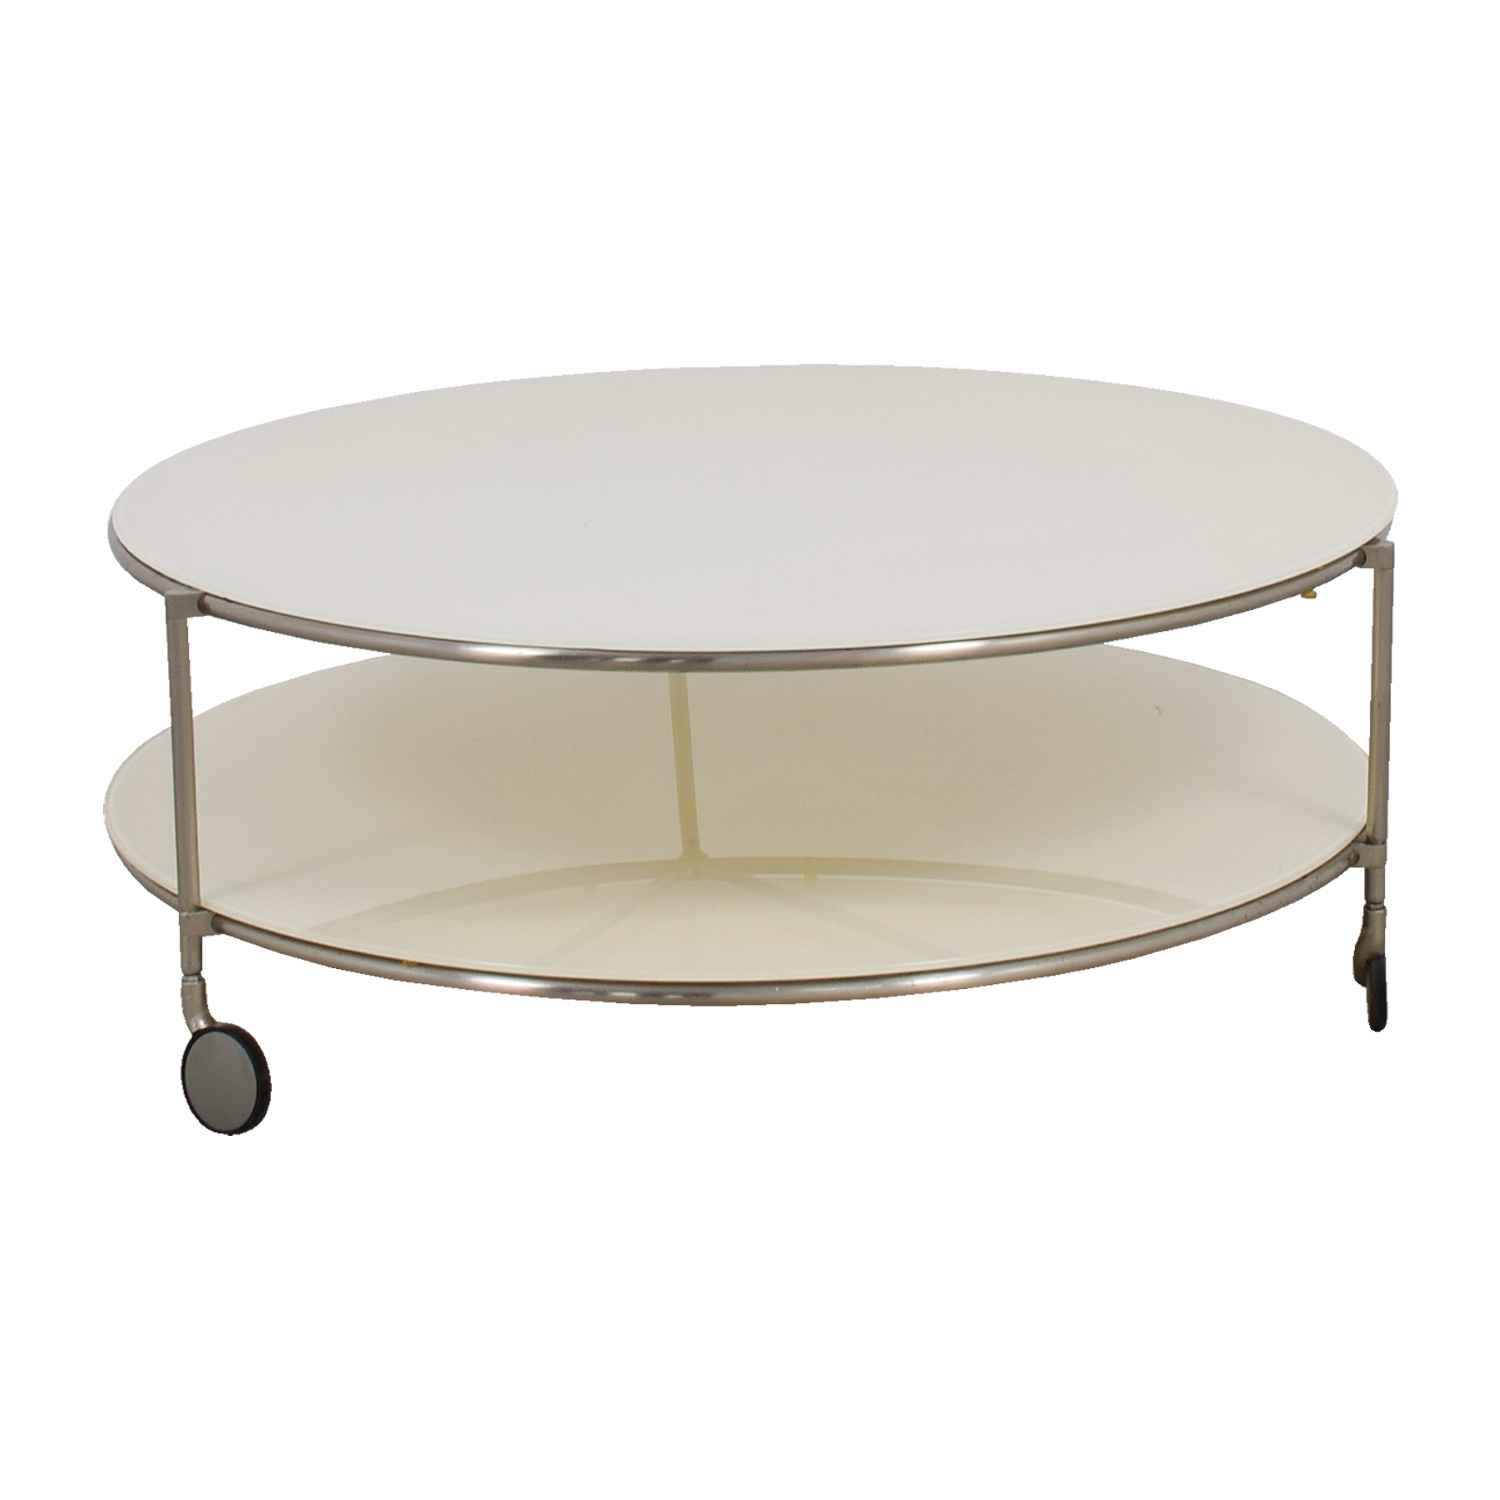 Crate & Barrel Crate & Barrel White Double Glass Cocktail Table on Castors second hand